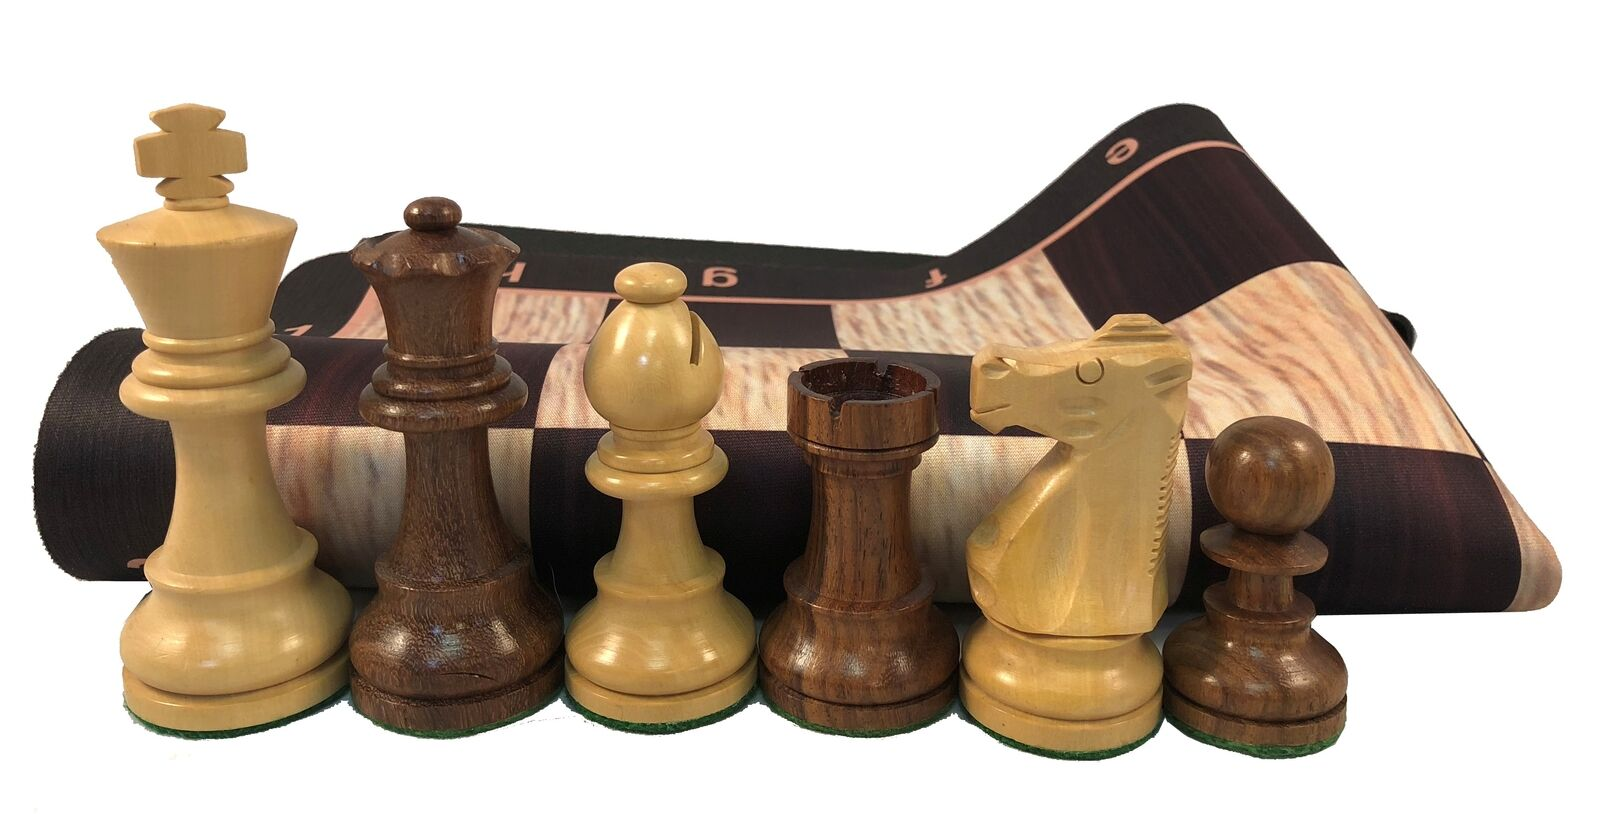 Wood Tournament Chess Pieces & Pro Floppy Chess Board